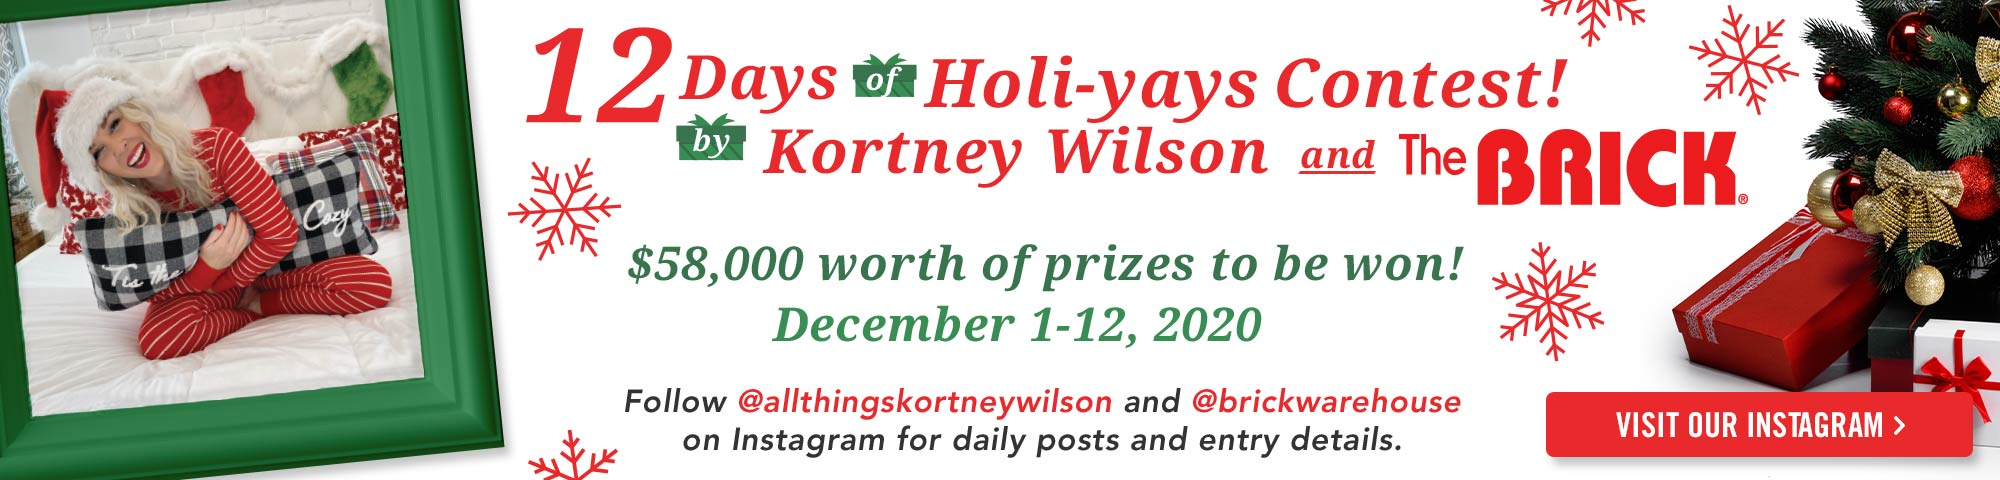 12 Days of Holi-yays with Kortney Wilson